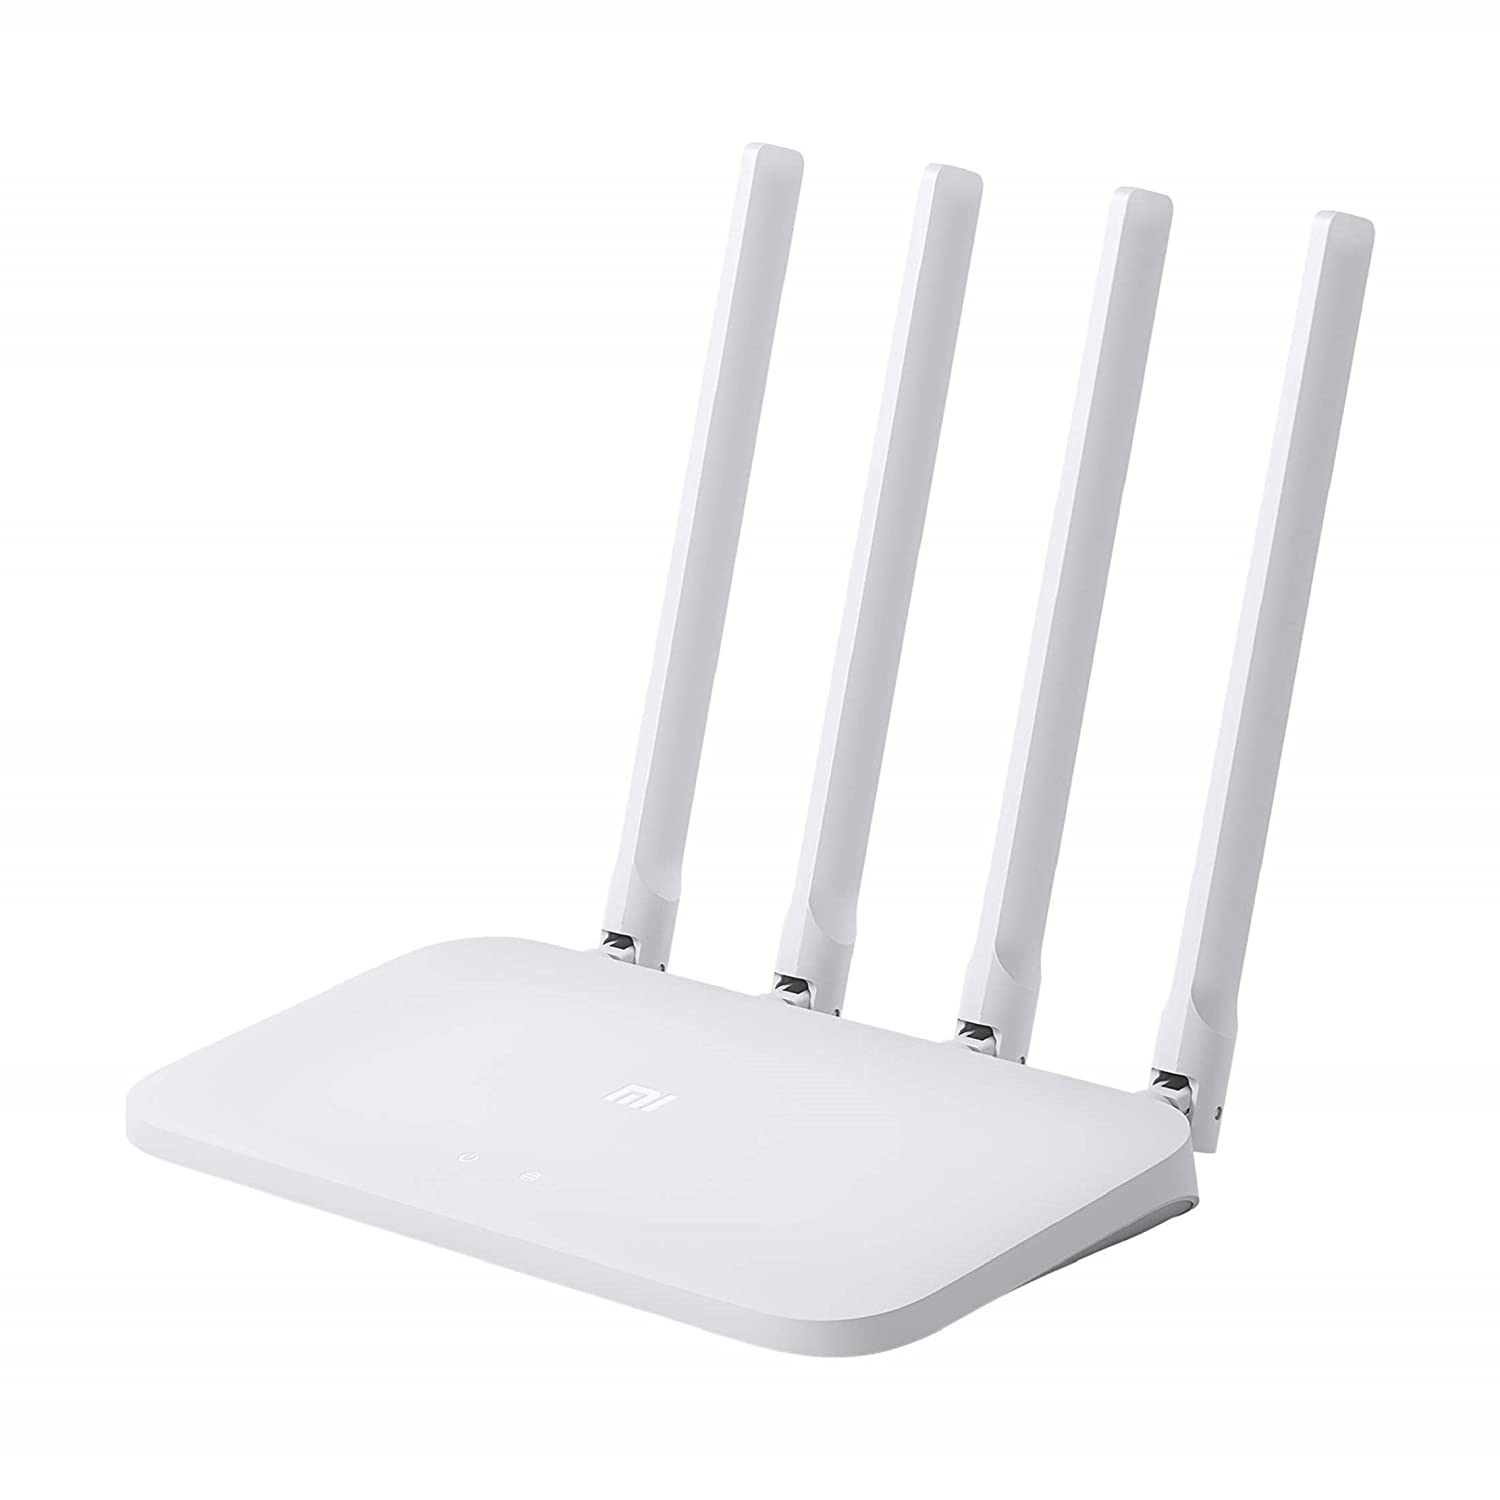 Mi Smart Router 4C, 300 Mbps with 4 high-Performance Antenna & App Control  - Buy Mi Smart Router 4C, 300 Mbps with 4 high-Performance Antenna & App  Control Online at Low Price